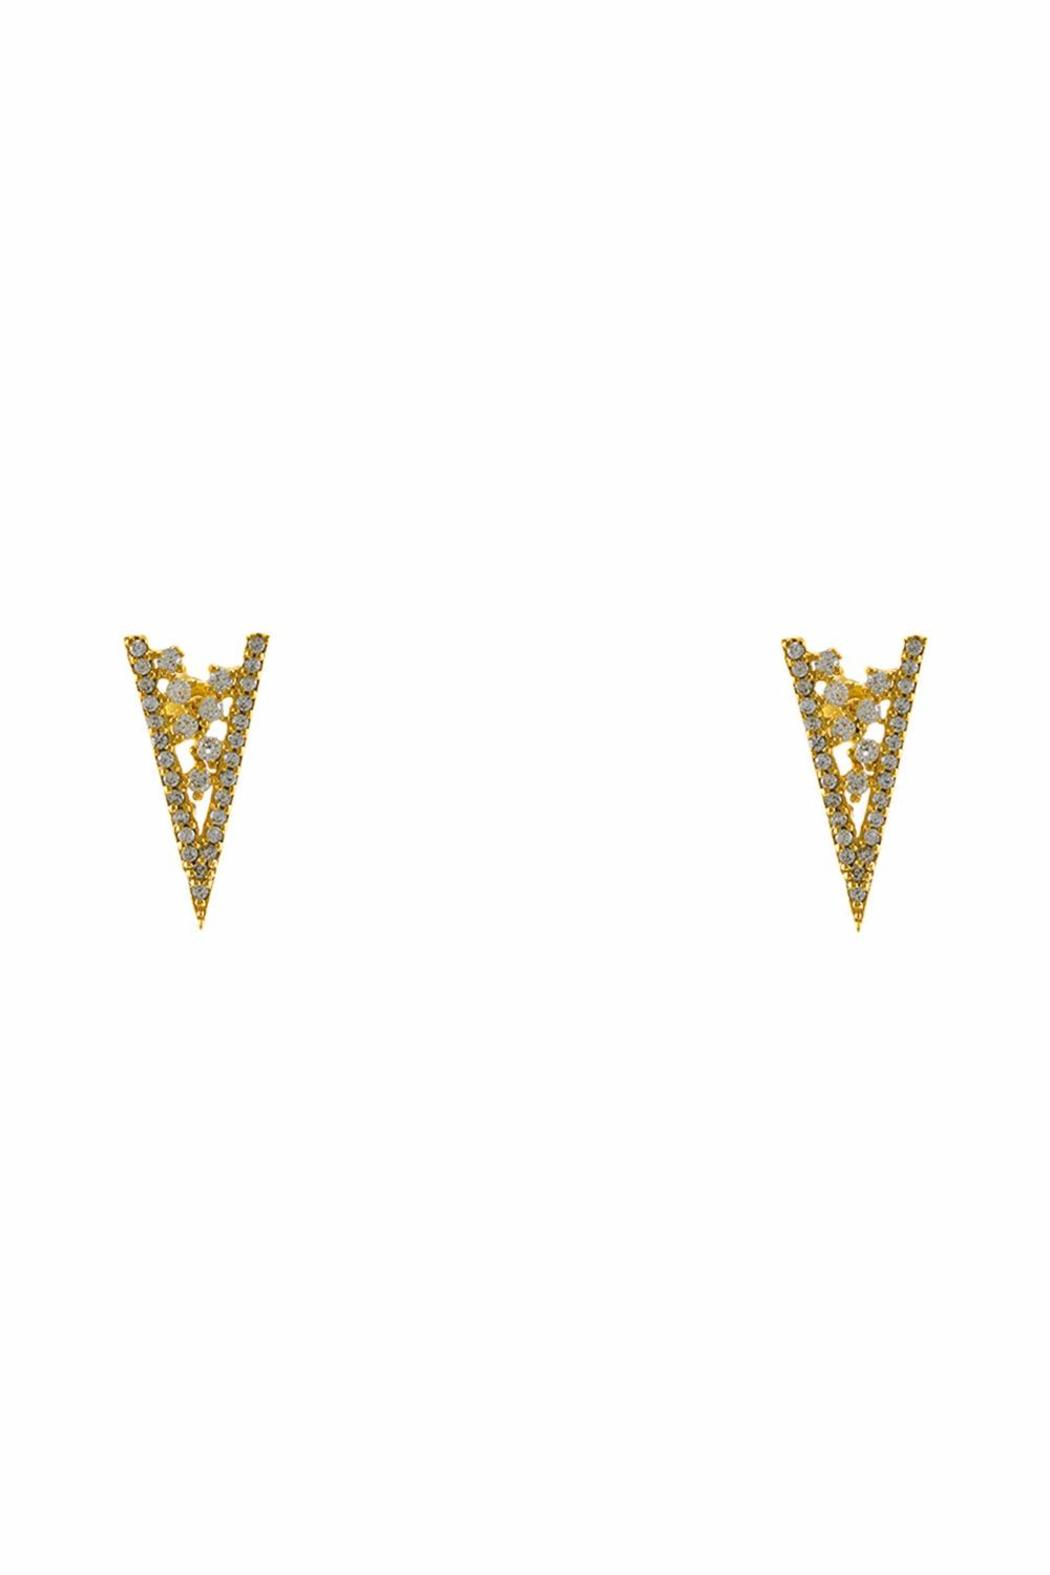 Baggis Accesorios Gold Plated Triangle Earring - Main Image